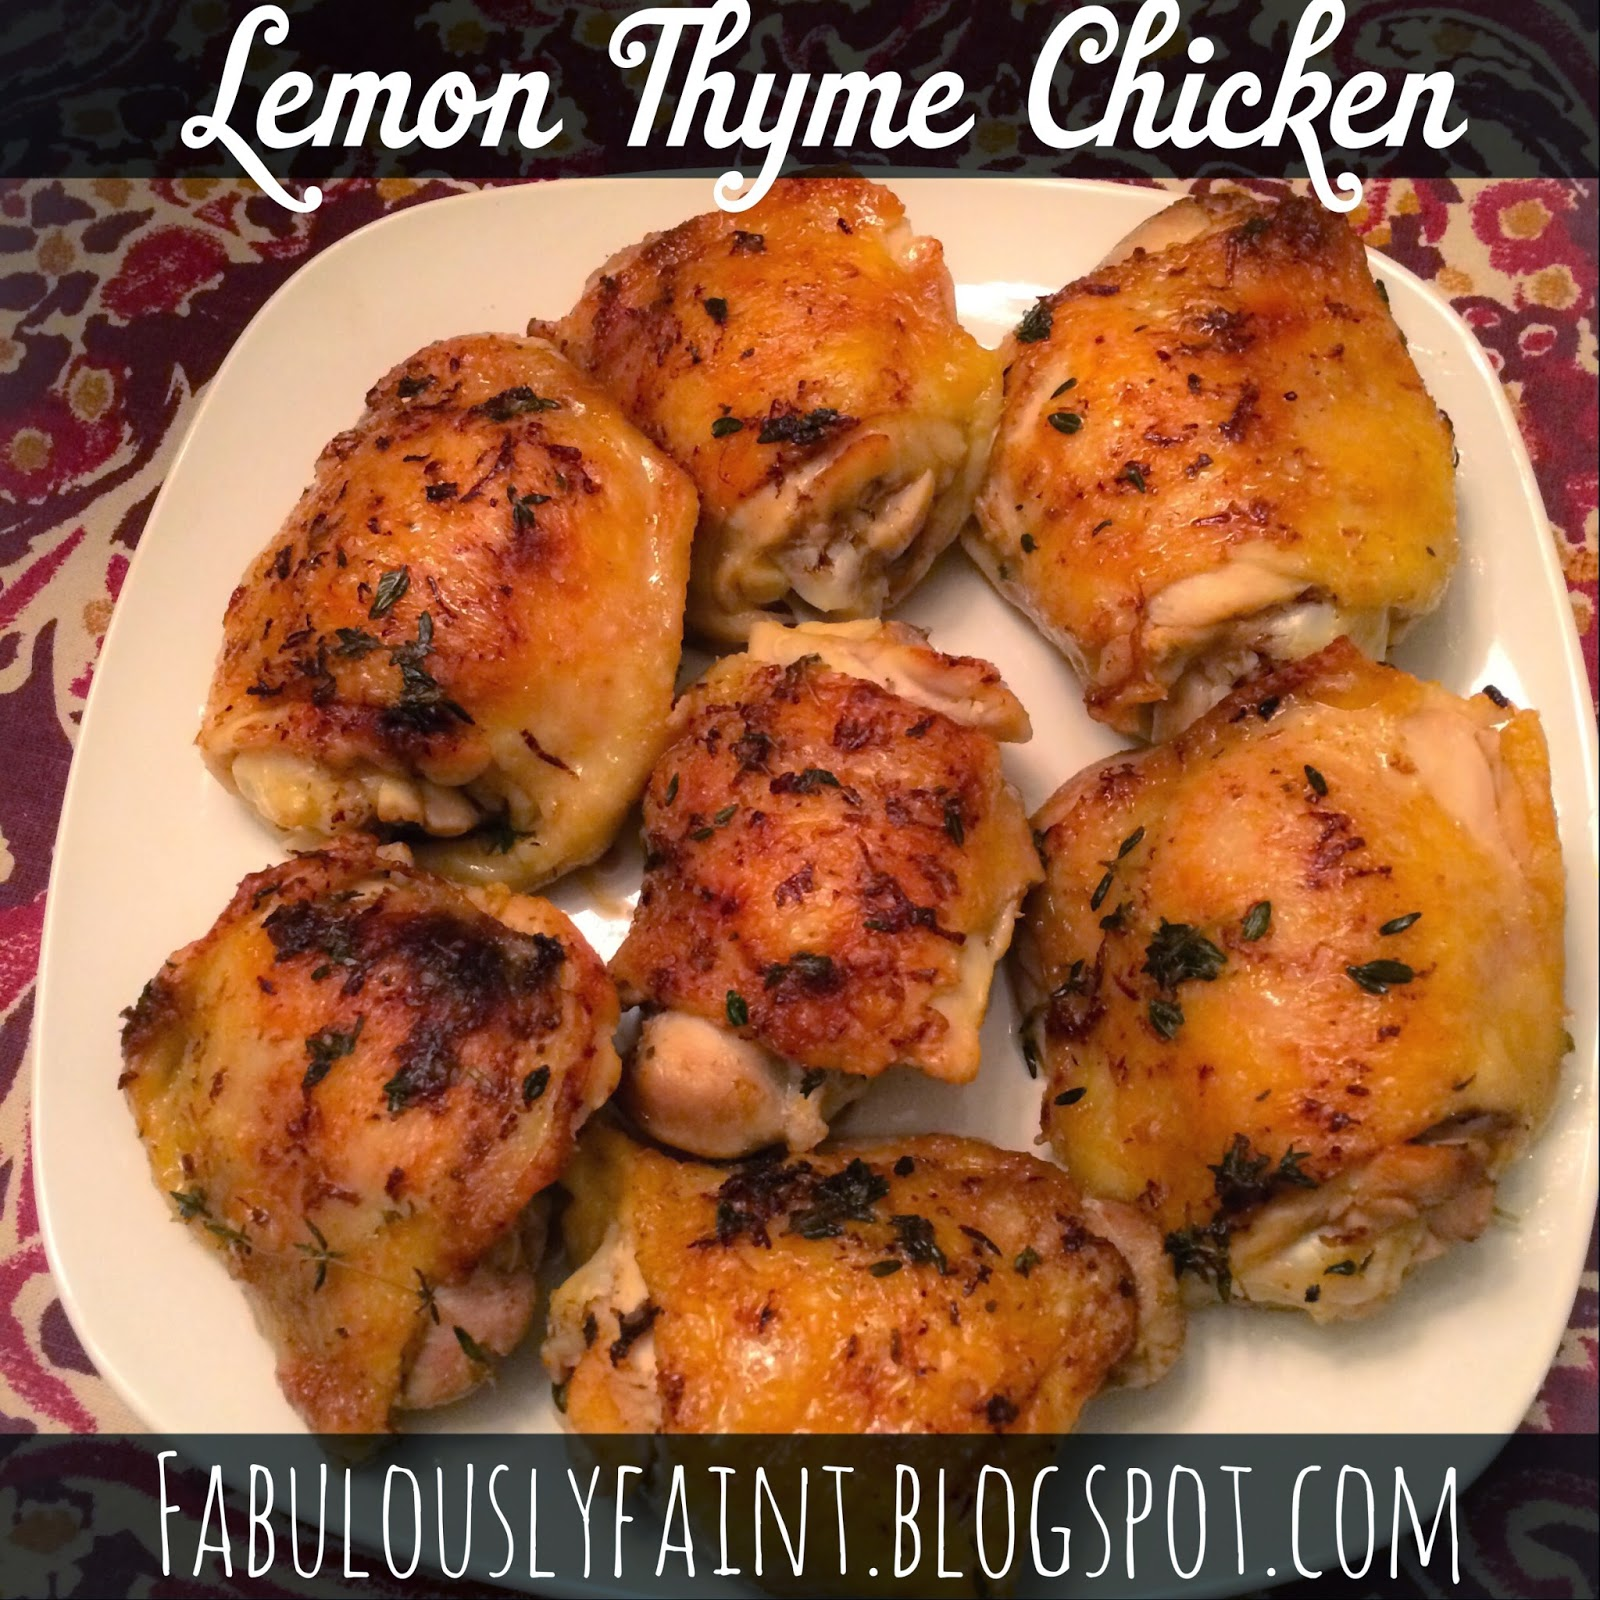 Fabulously Faint : Foodie Friday: Lemon Thyme Chicken